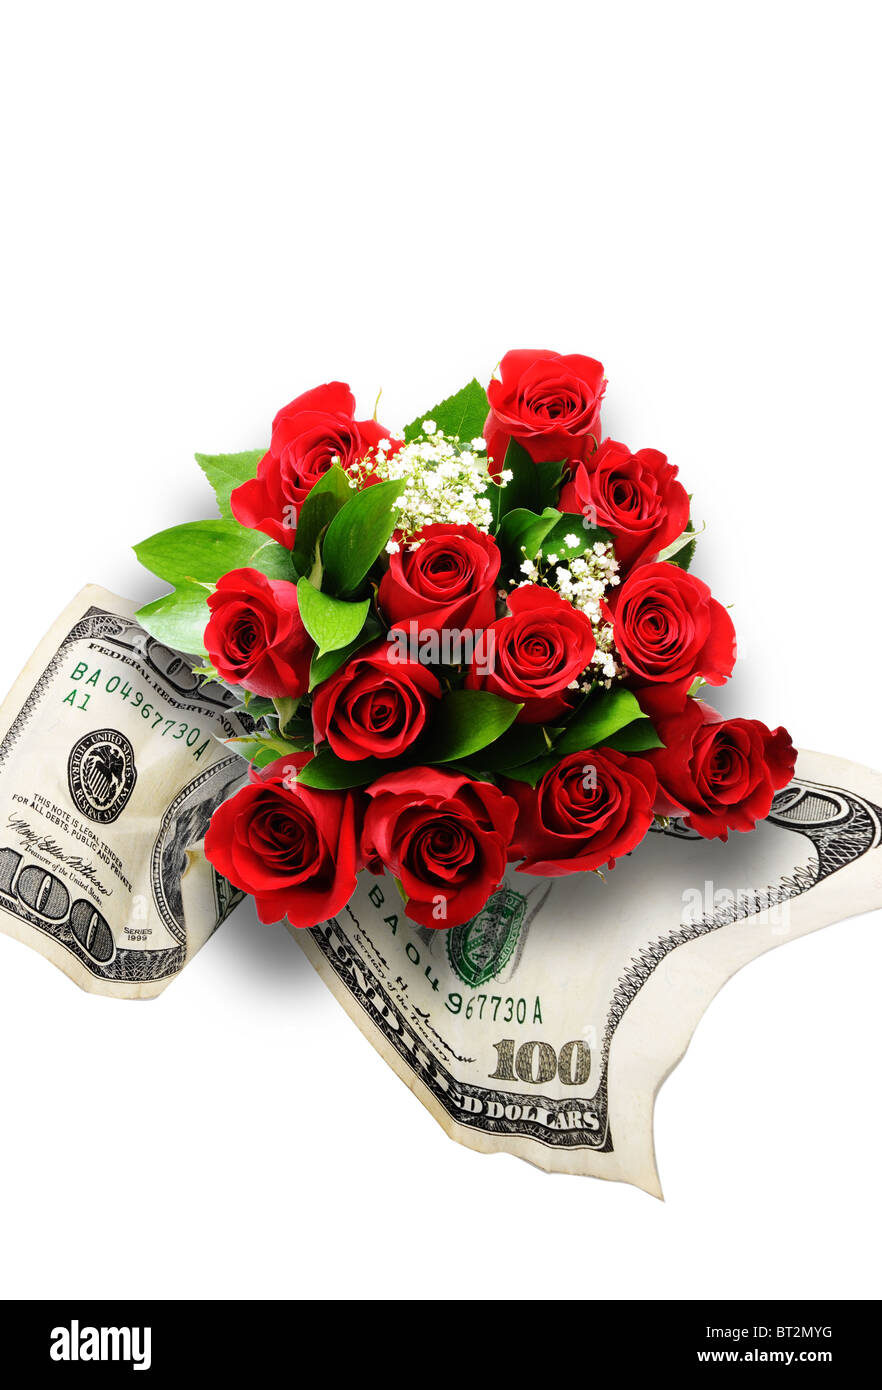 How to make a money origami rose out of Dollar bills 🌹 EASY - YouTube | 1390x882